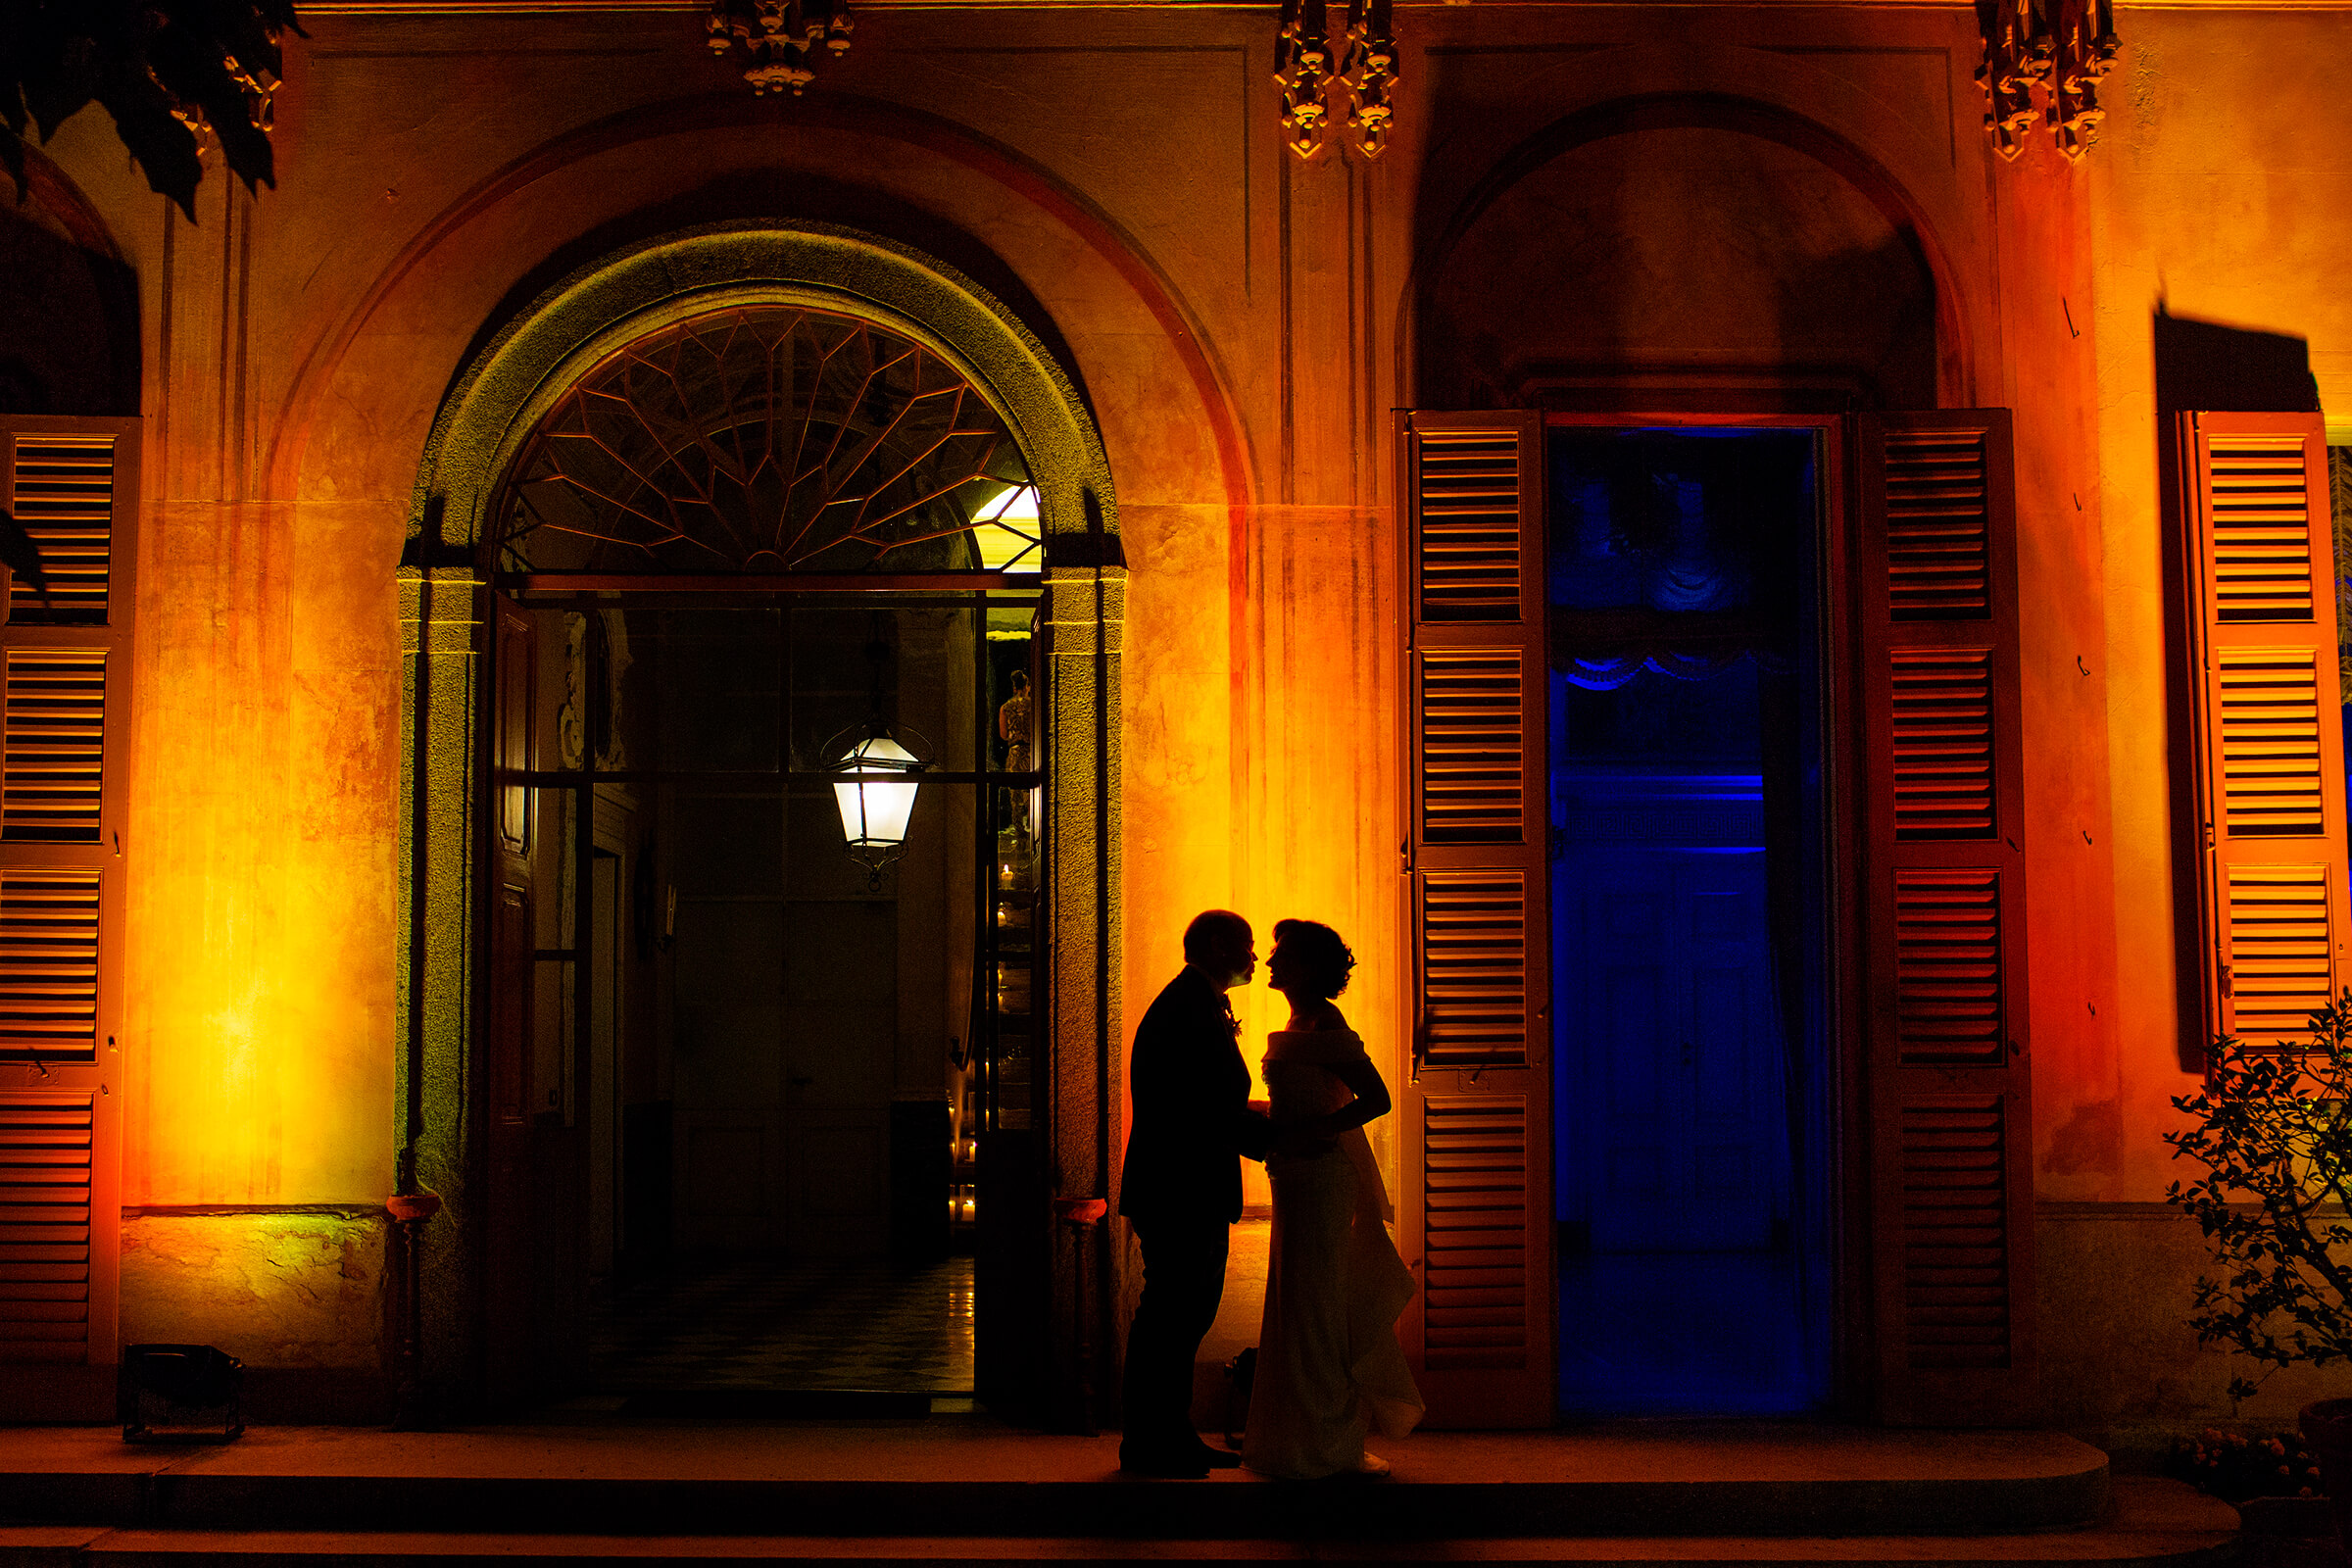 Face to face couple silhouette in Sicily against colorful building at night - photo by Nino Lombardo Photographer